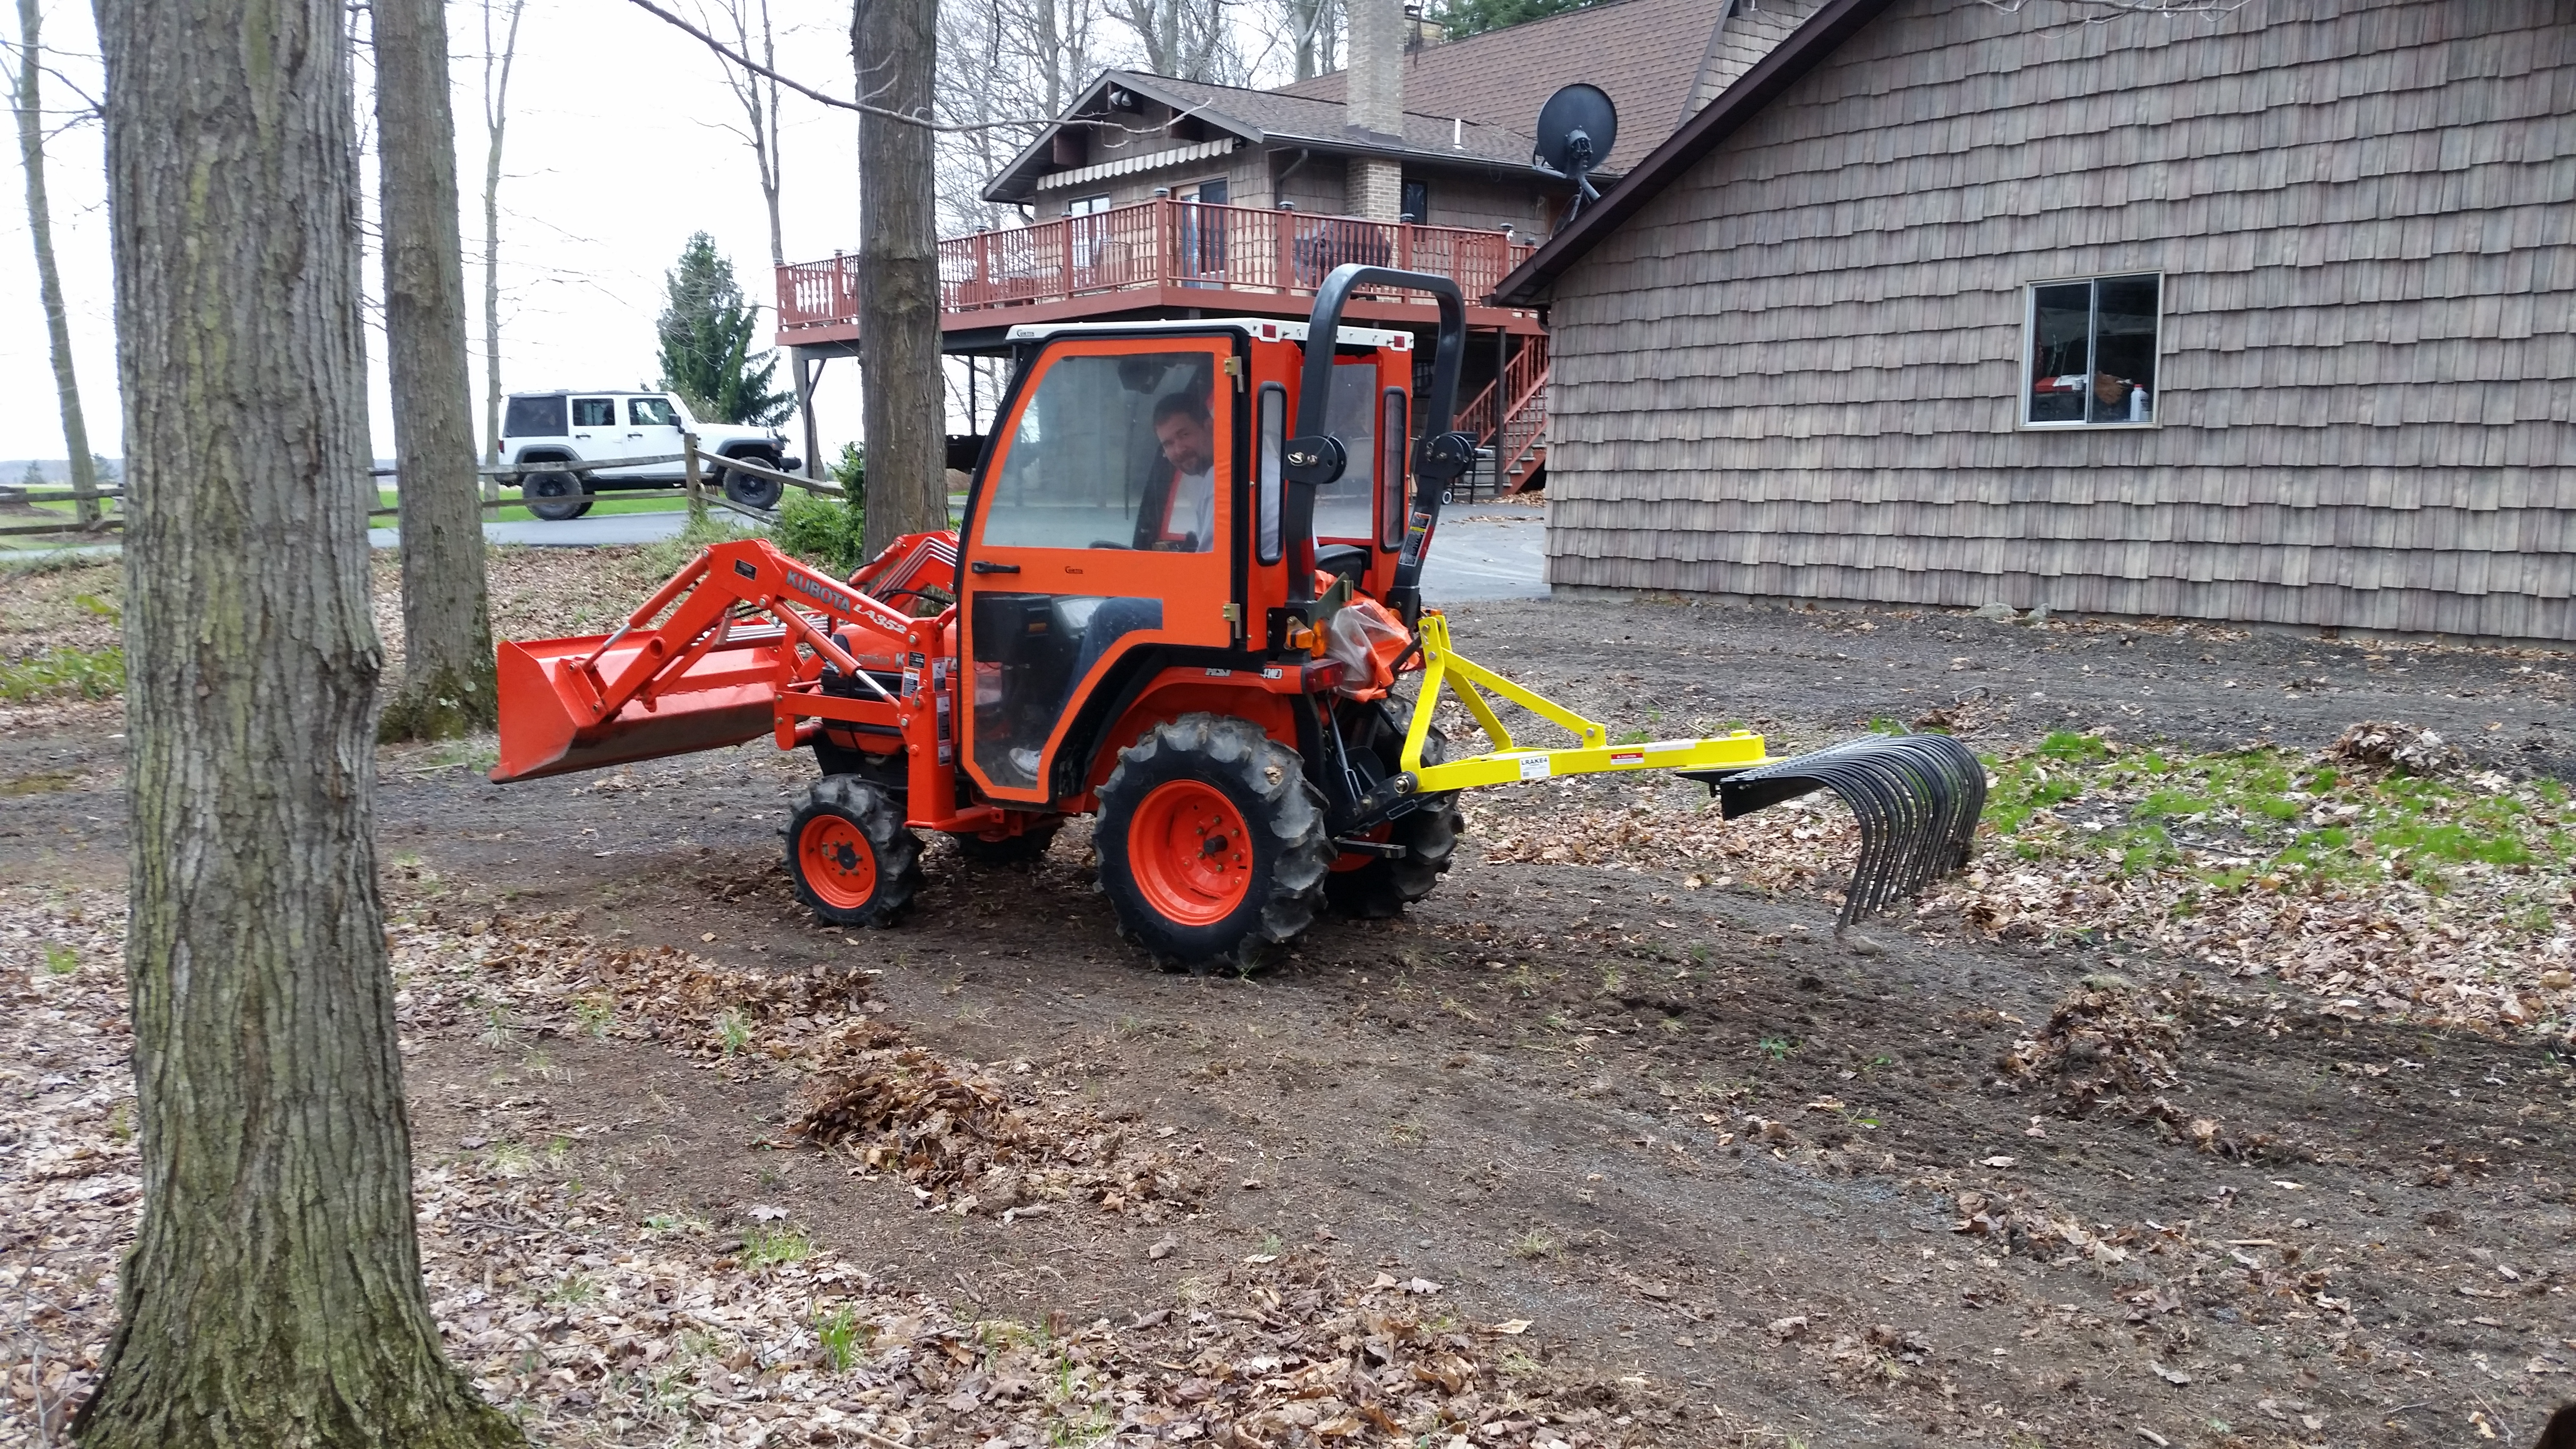 Pull Behind Rake For Lawn Tractor : Landscape rock rake point soil gravel lawn tow behind